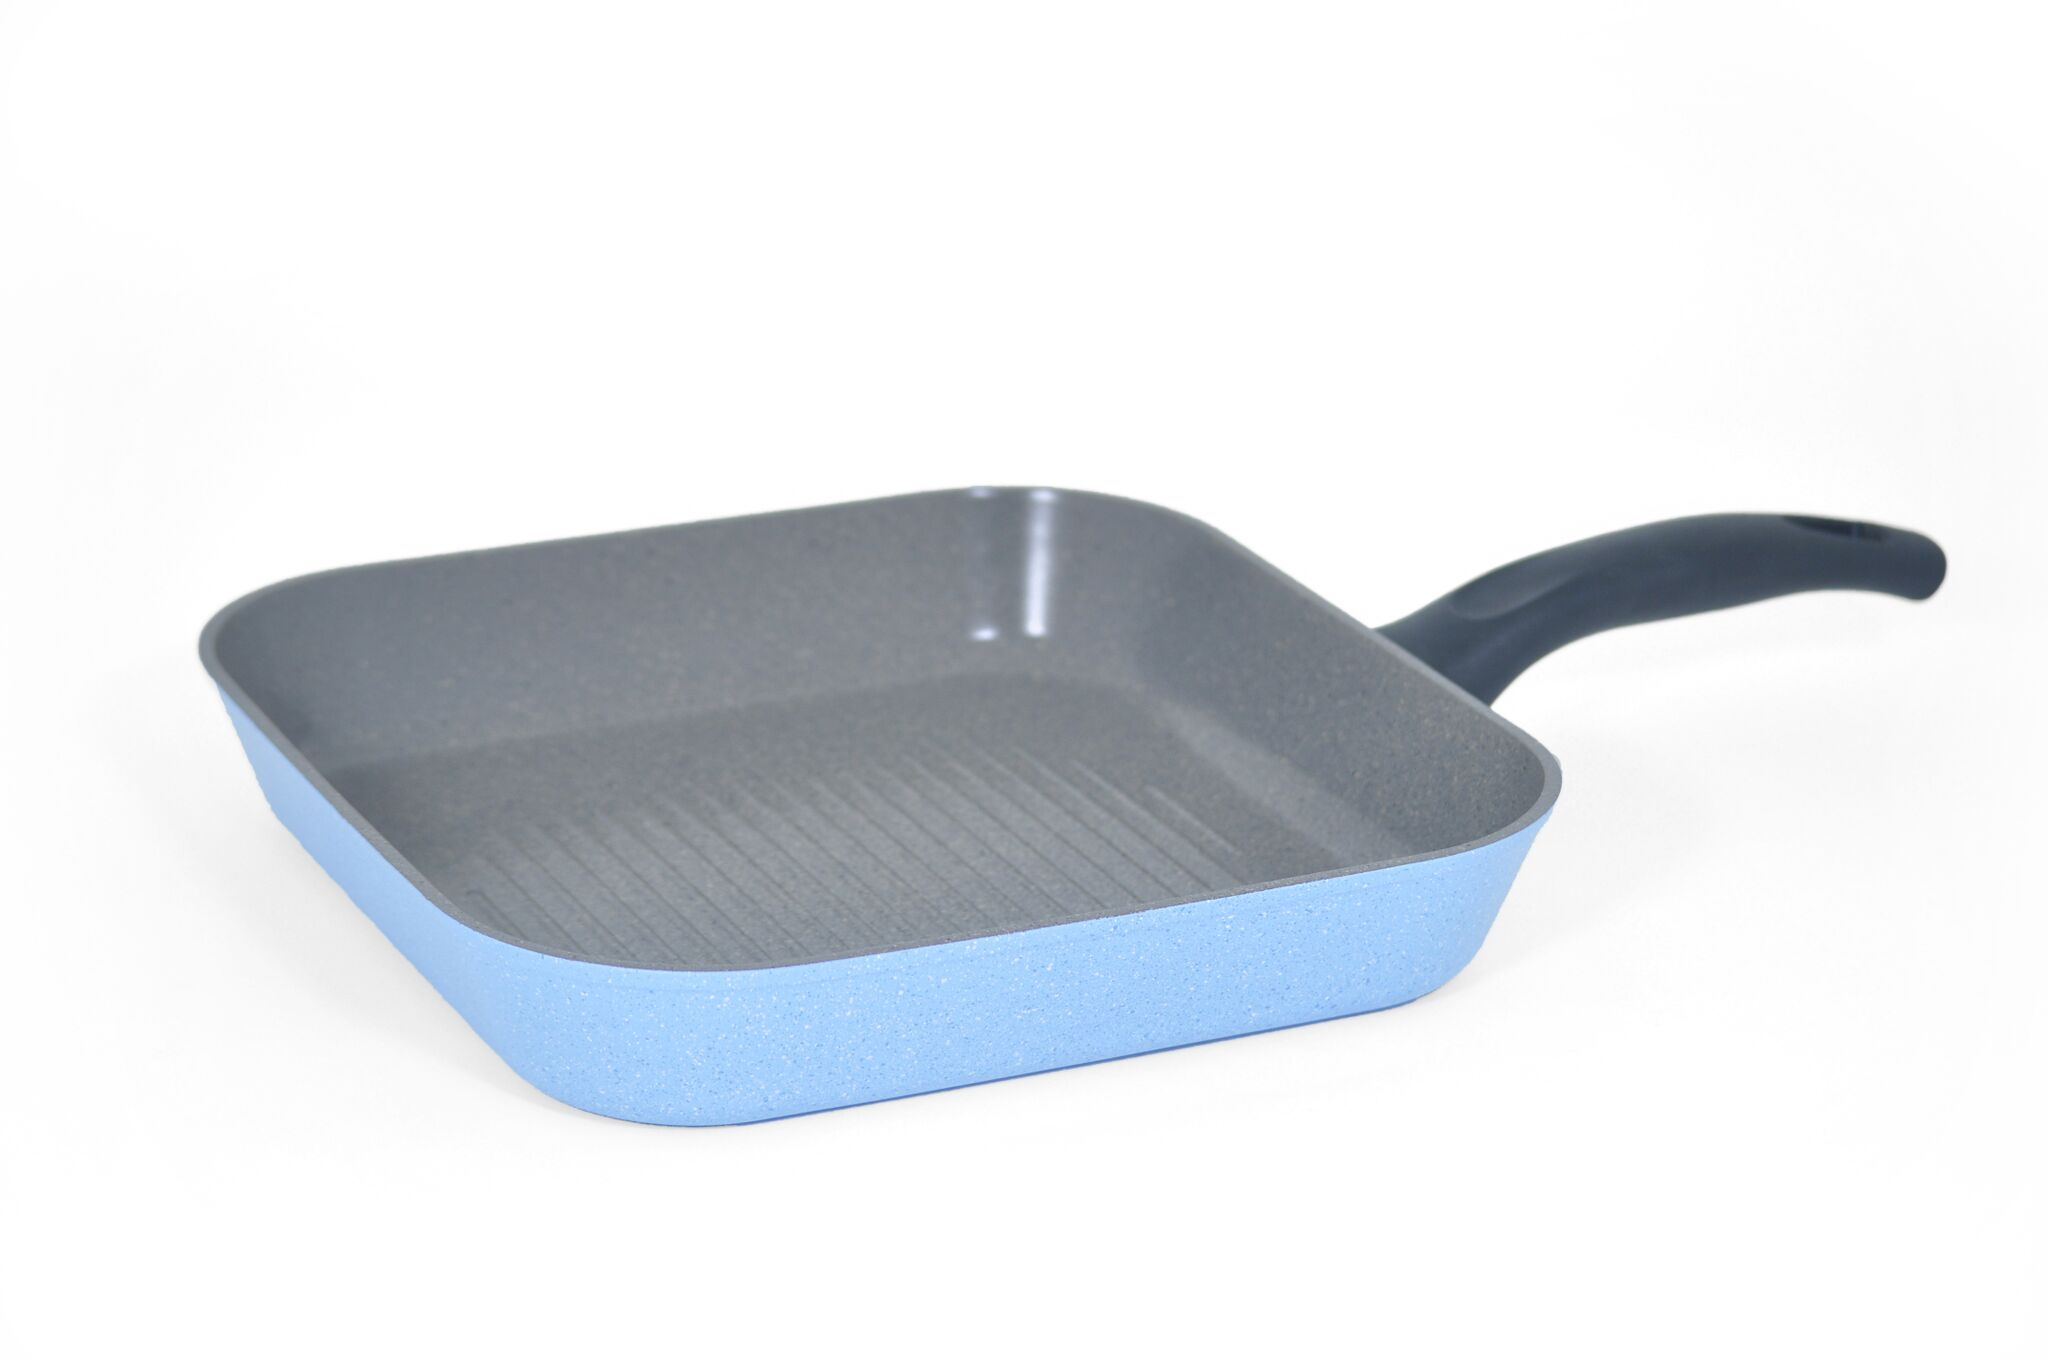 Neoflam Ecolon Coated 16cm Egg Pan in Blue